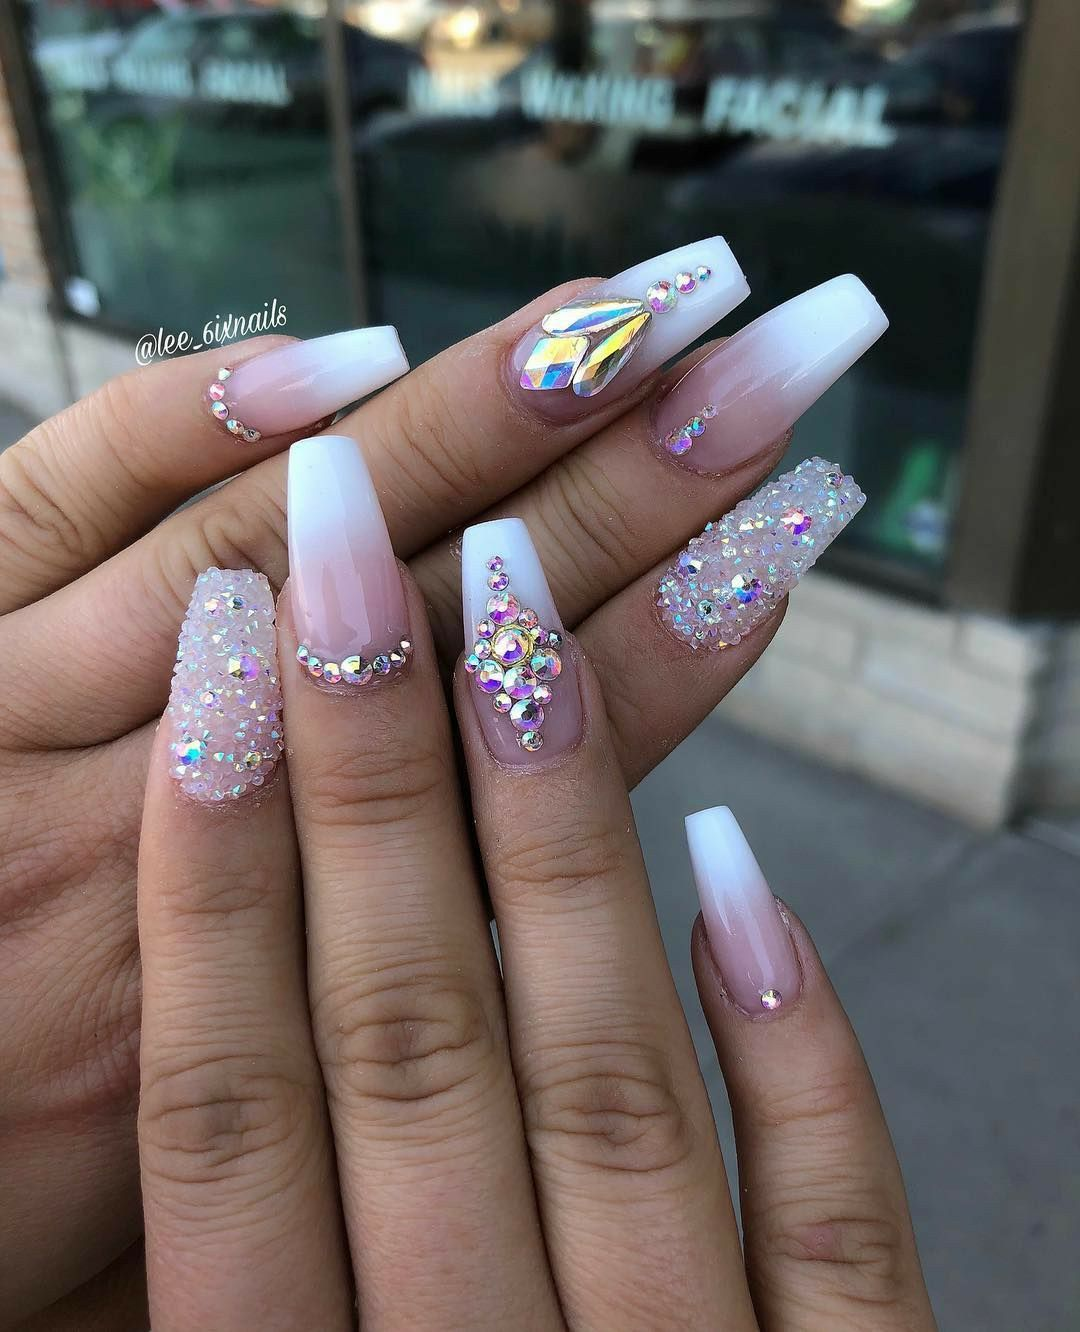 Coffin Prom Nails In 2020 Nails Design With Rhinestones Diamond Nail Art Design Diamond Nail Designs